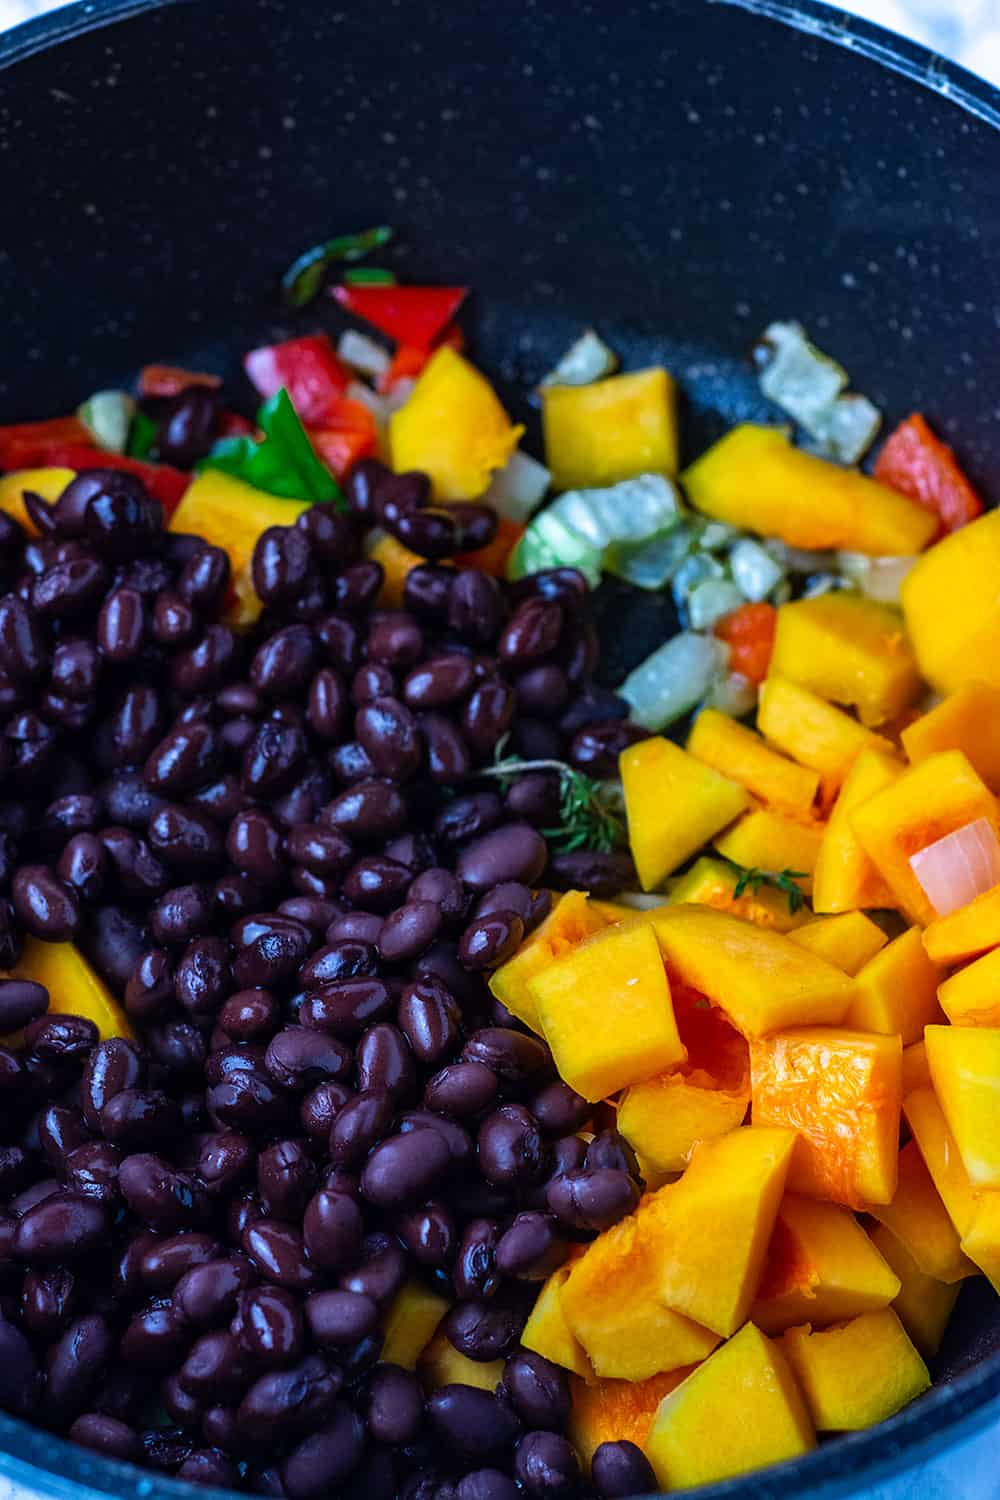 Ingredients for black bean and butternut squash stew, black bean, onion, garlic, bell pepper in a black saucepan